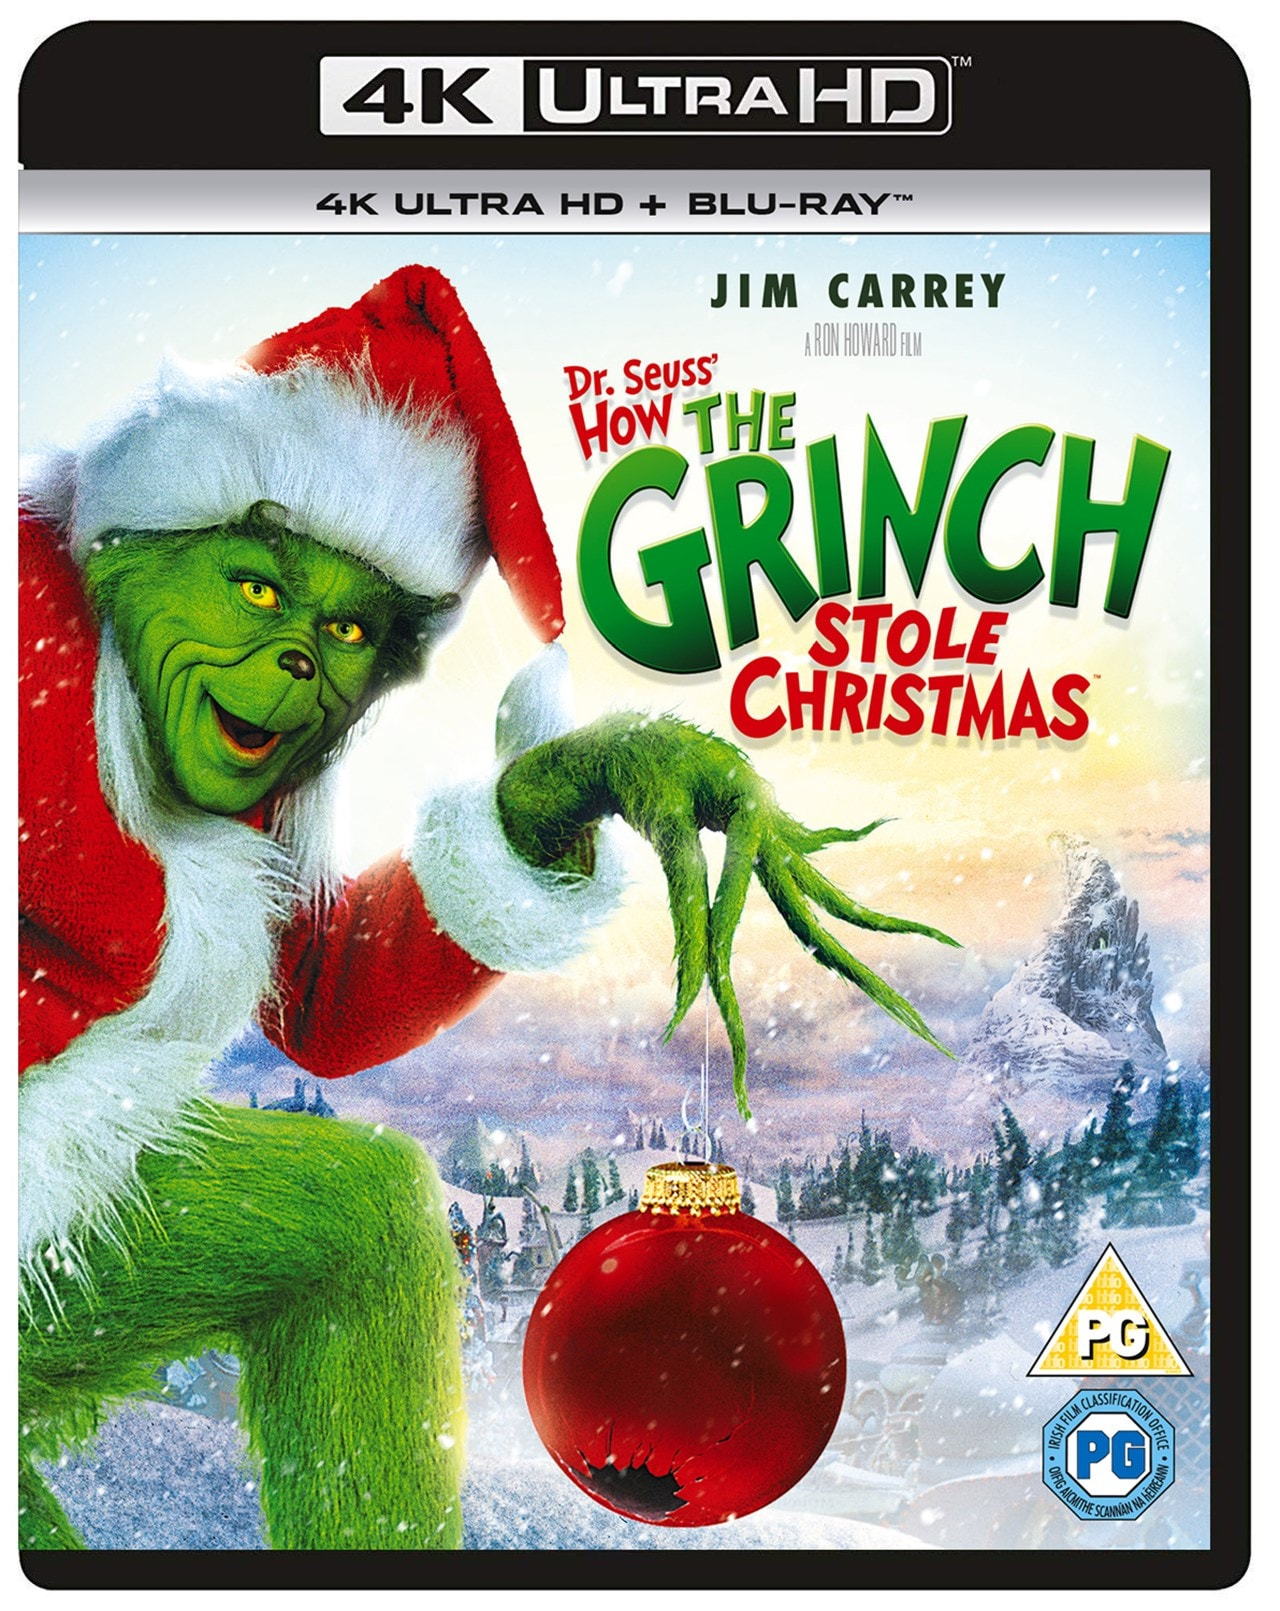 The Grinch - 1